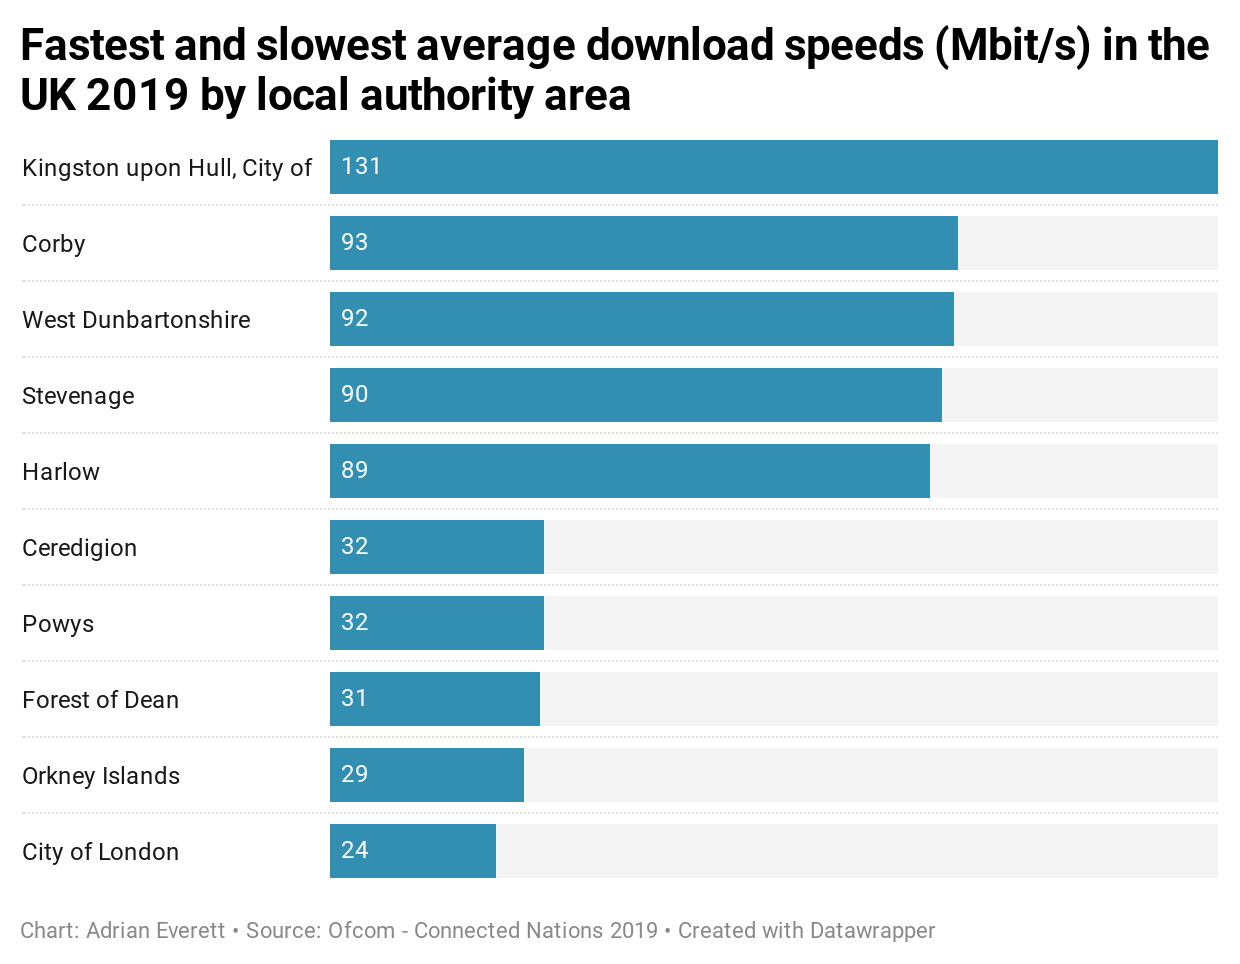 Fastest and slowest average download speeds (Mbps) in the UK 2019 by local authority area